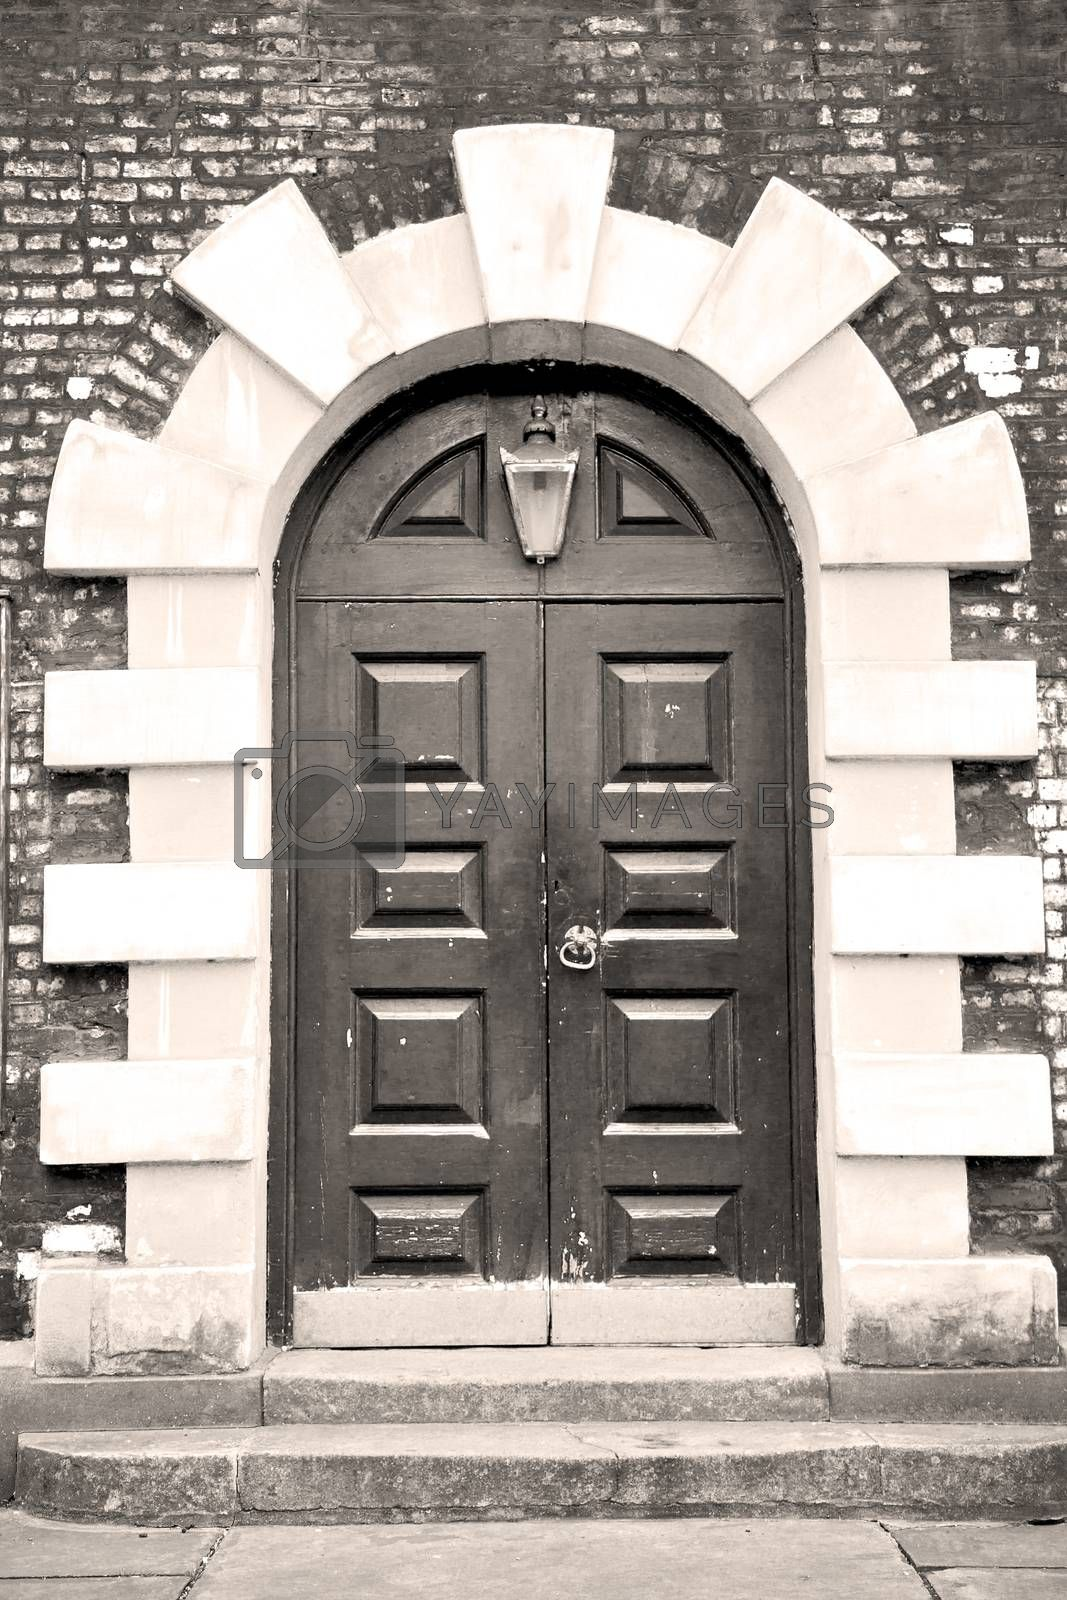 wooden parliament in london old church door and marble antique   by lkpro